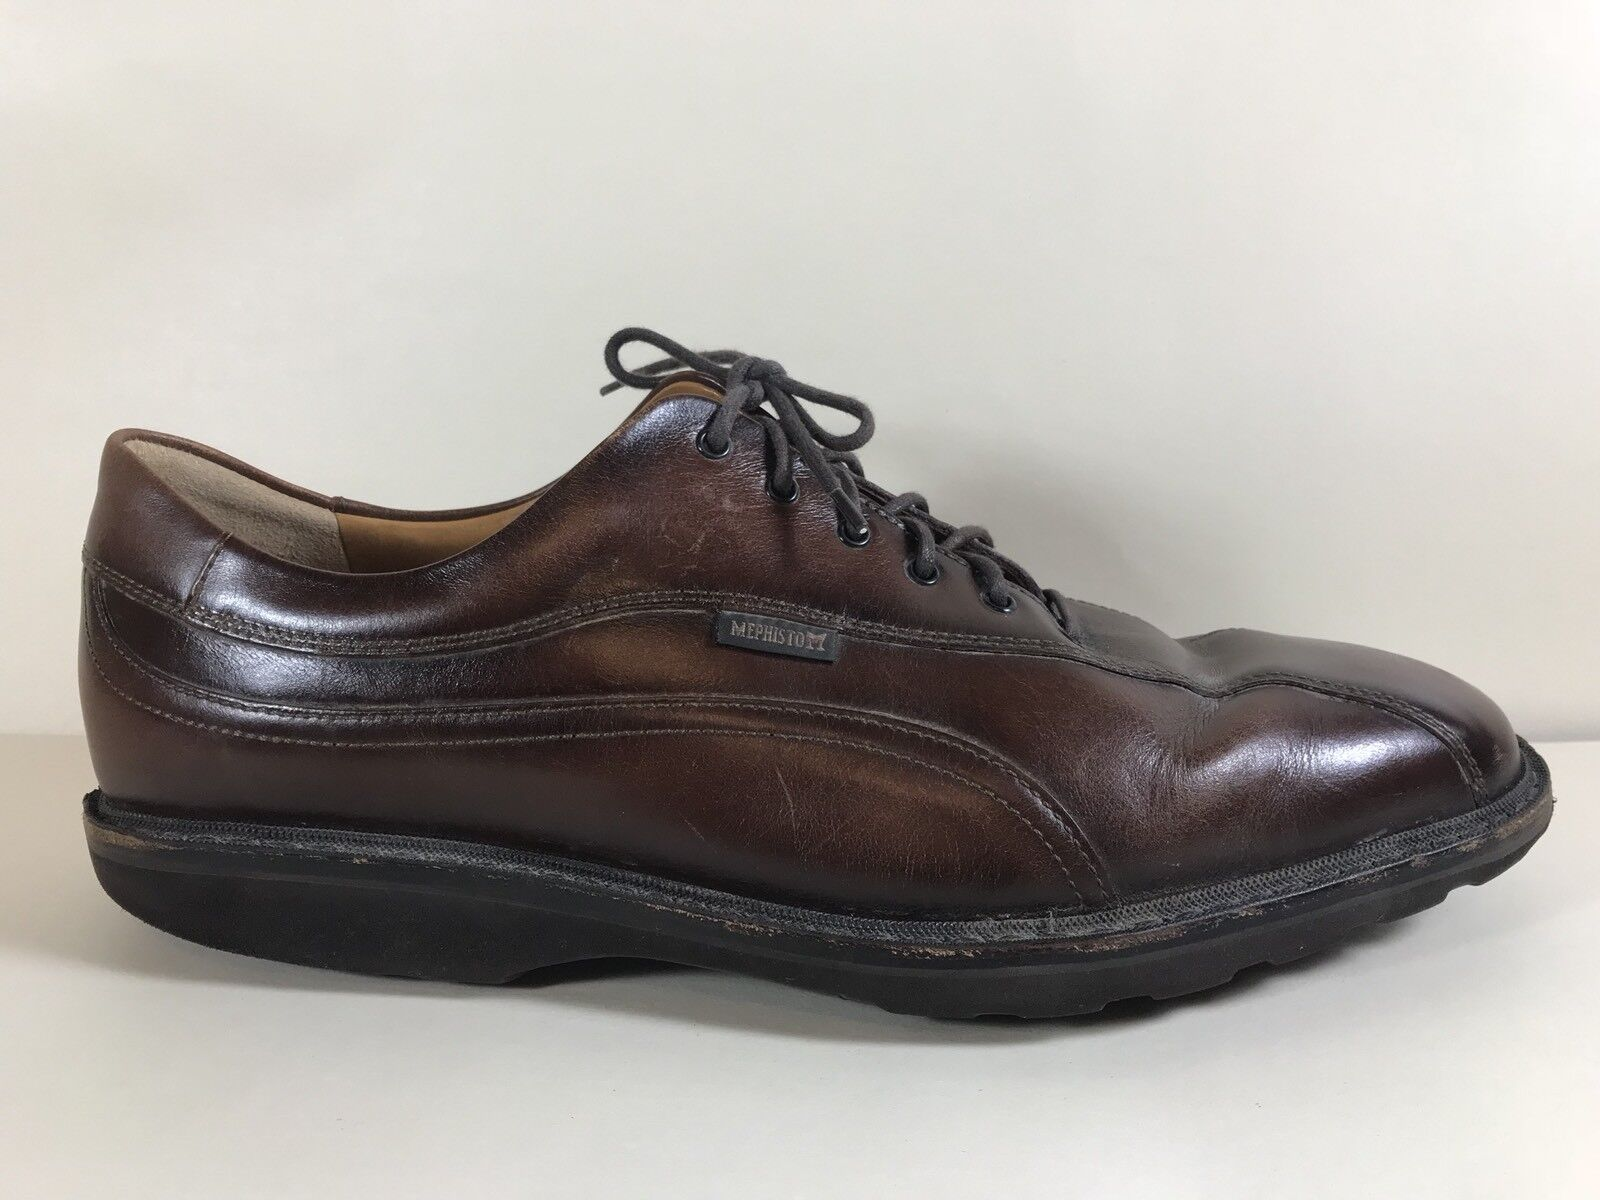 Mephisto Goodyear Welt Brown Lace Oxford Abel Uomo Shoes Bicycle Size 11 Bicycle Shoes Toe 48e00c